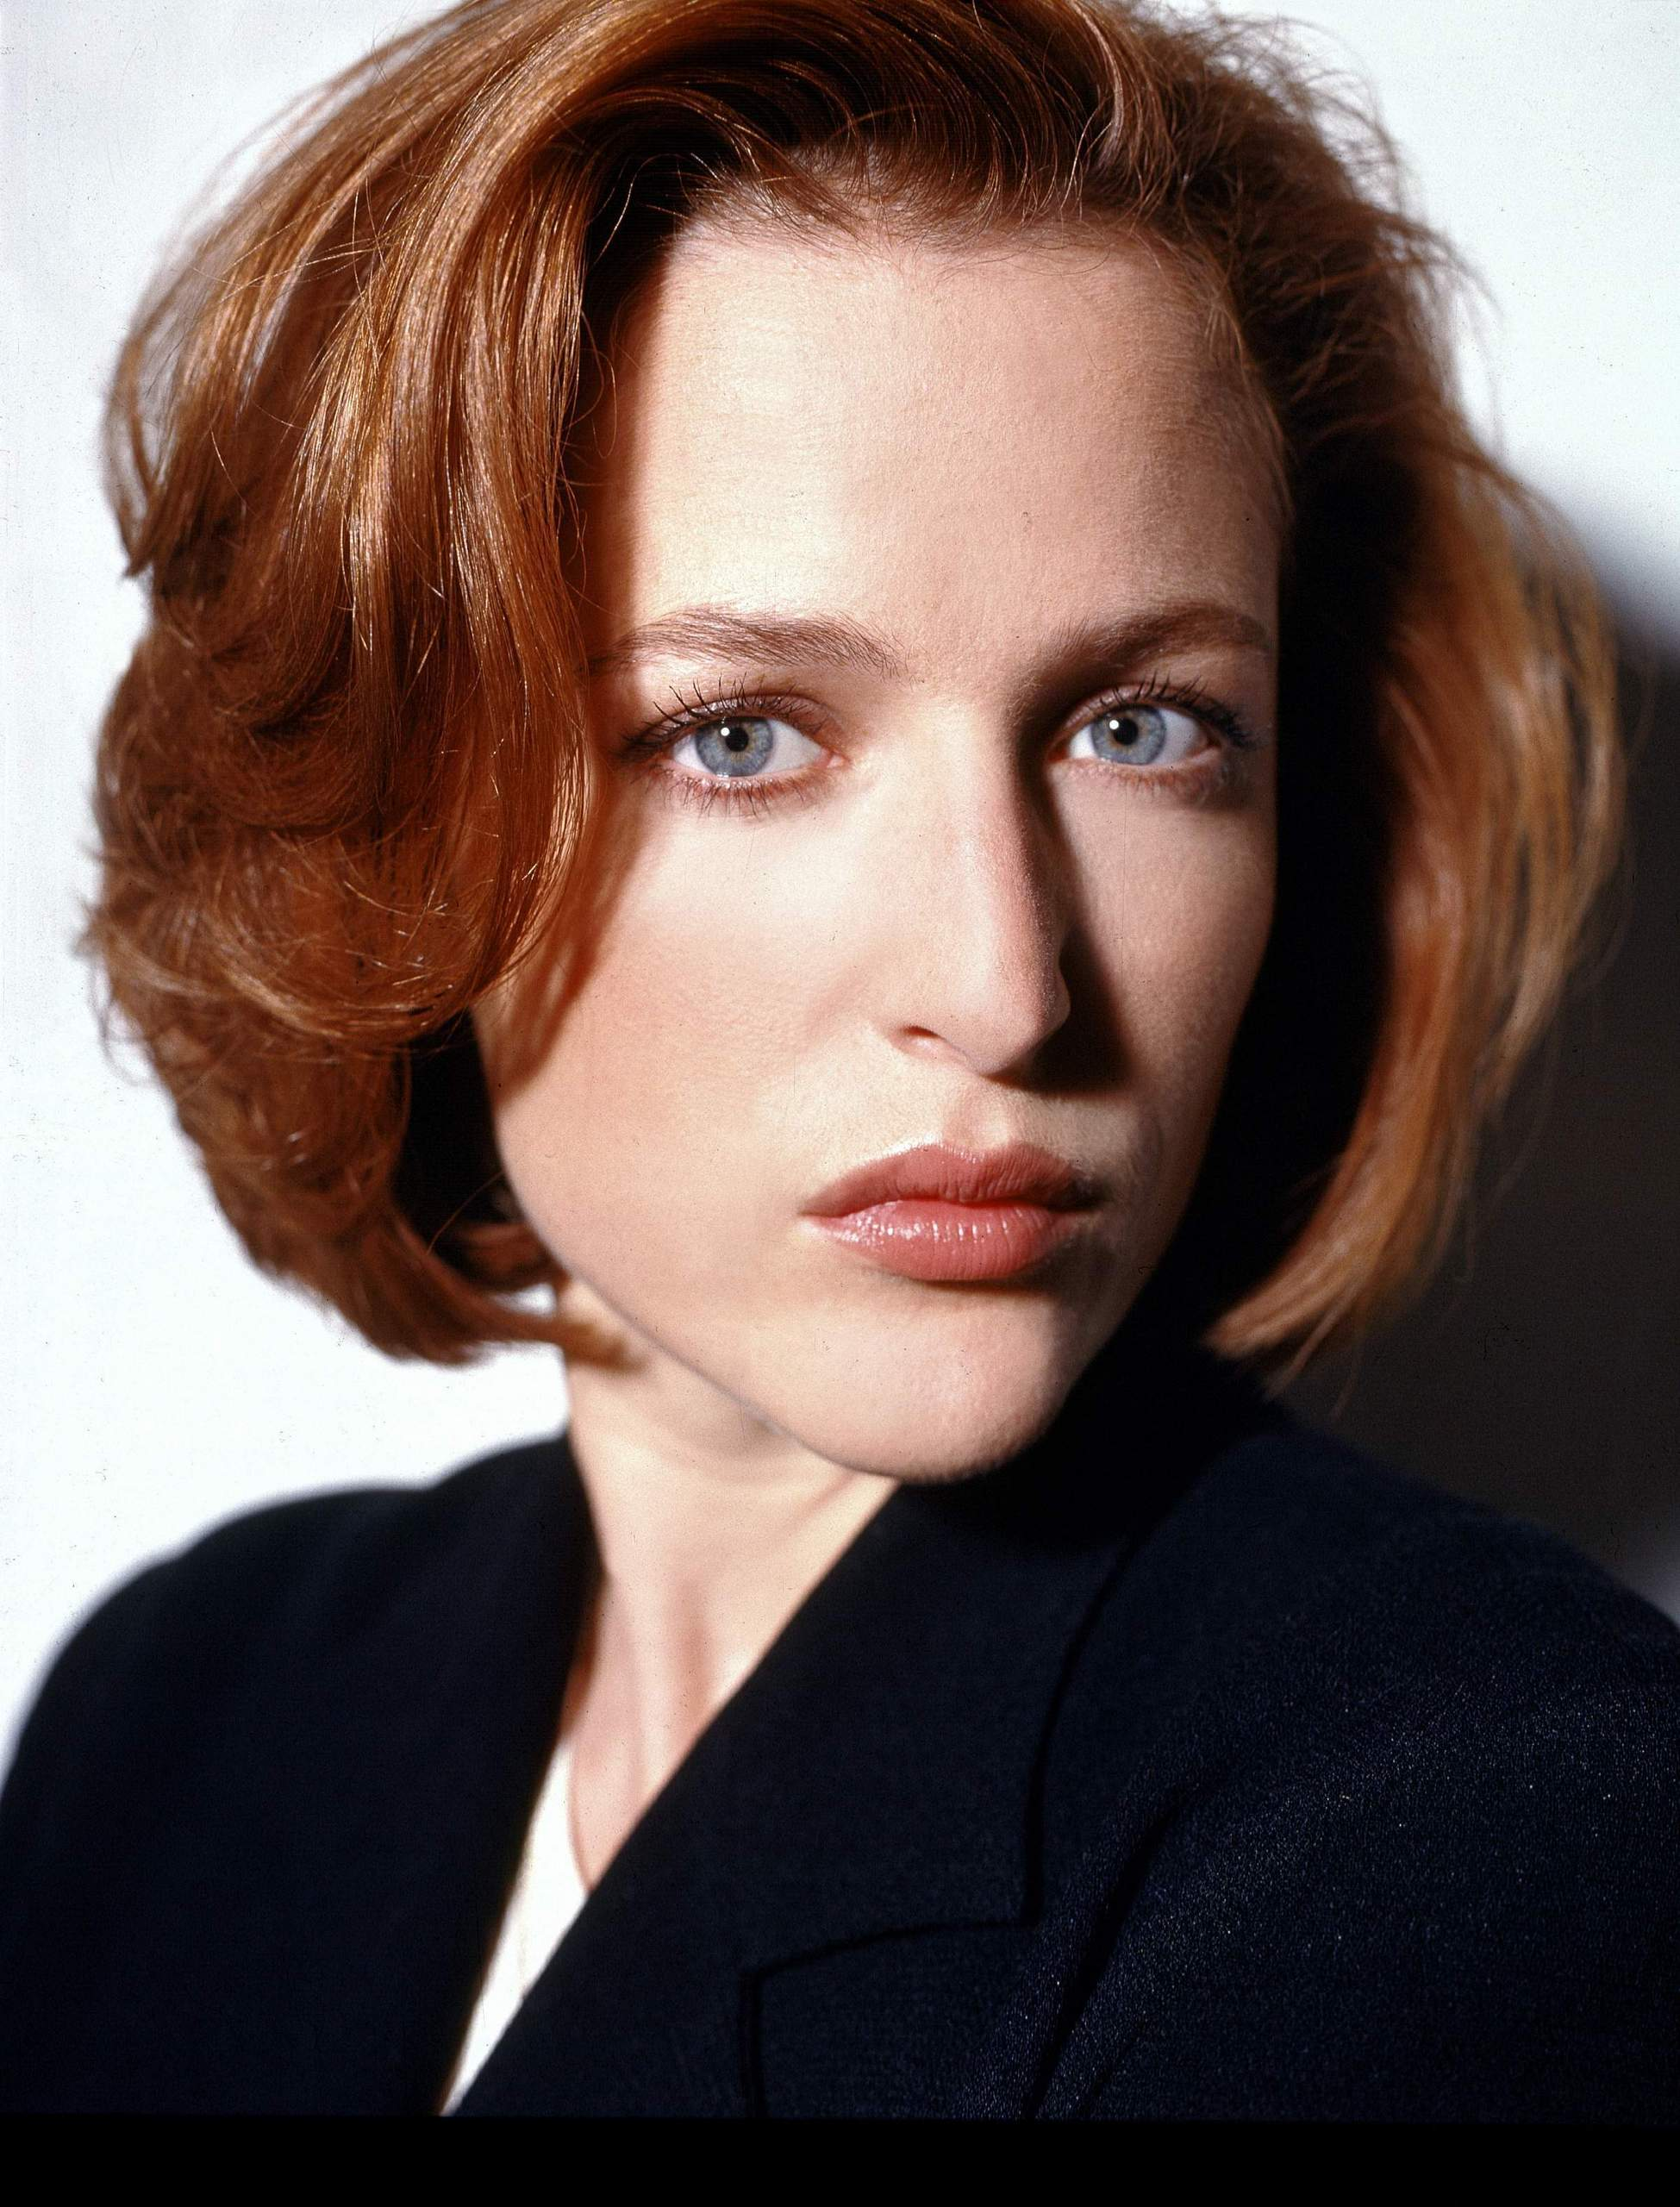 gillian anderson - photo #48